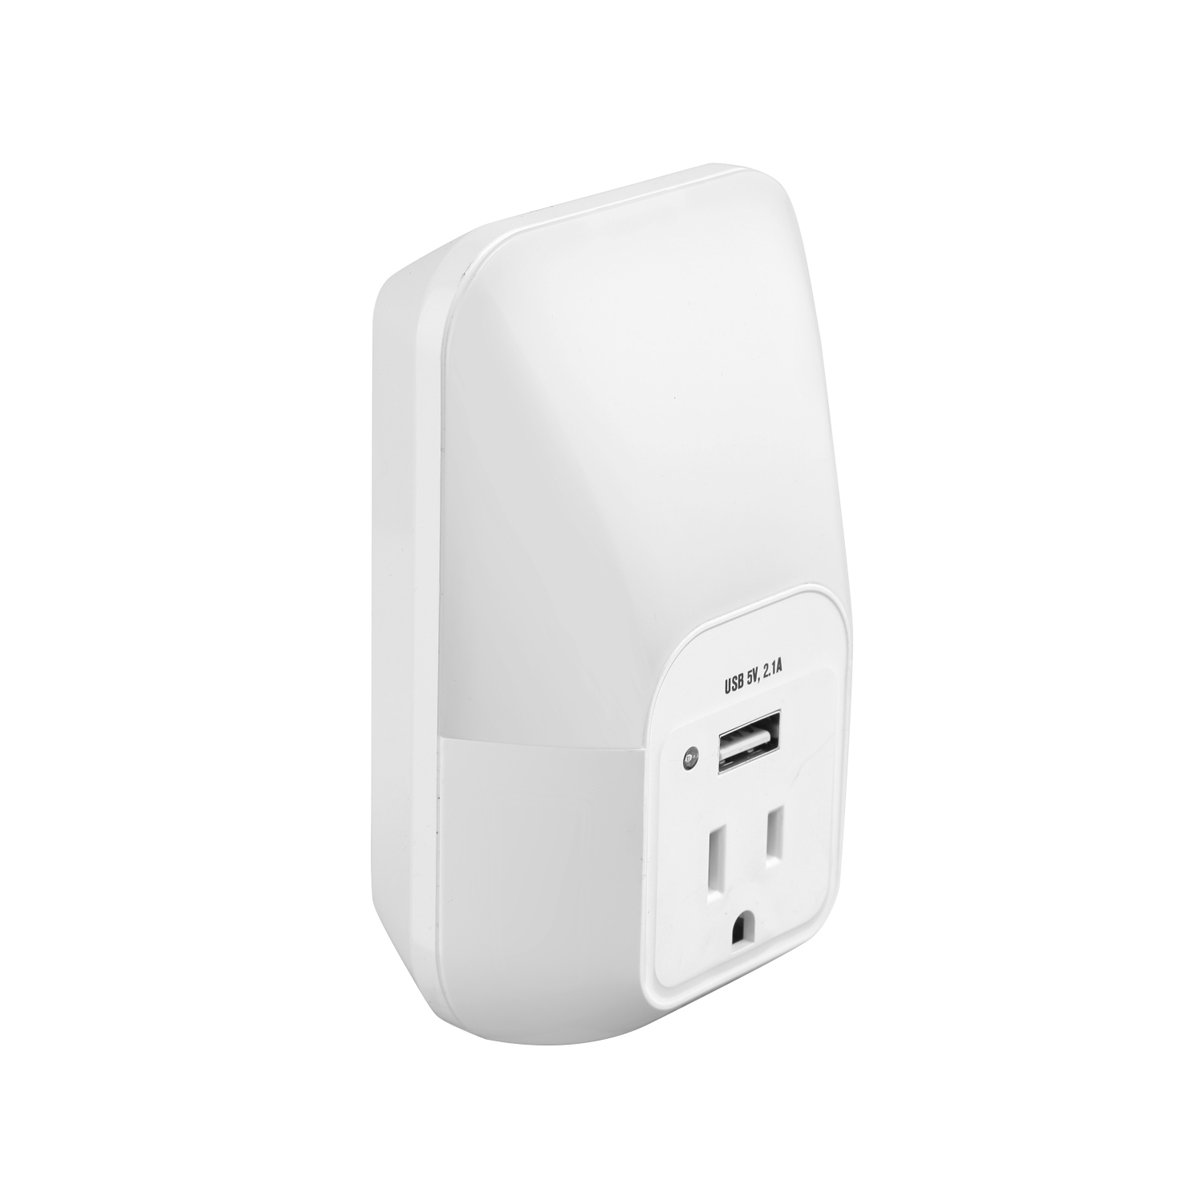 Link2Home EM-PL62W LED Photocell Color Change Night Light with AC Outlet and USB Wall Charger, White - - Amazon.com